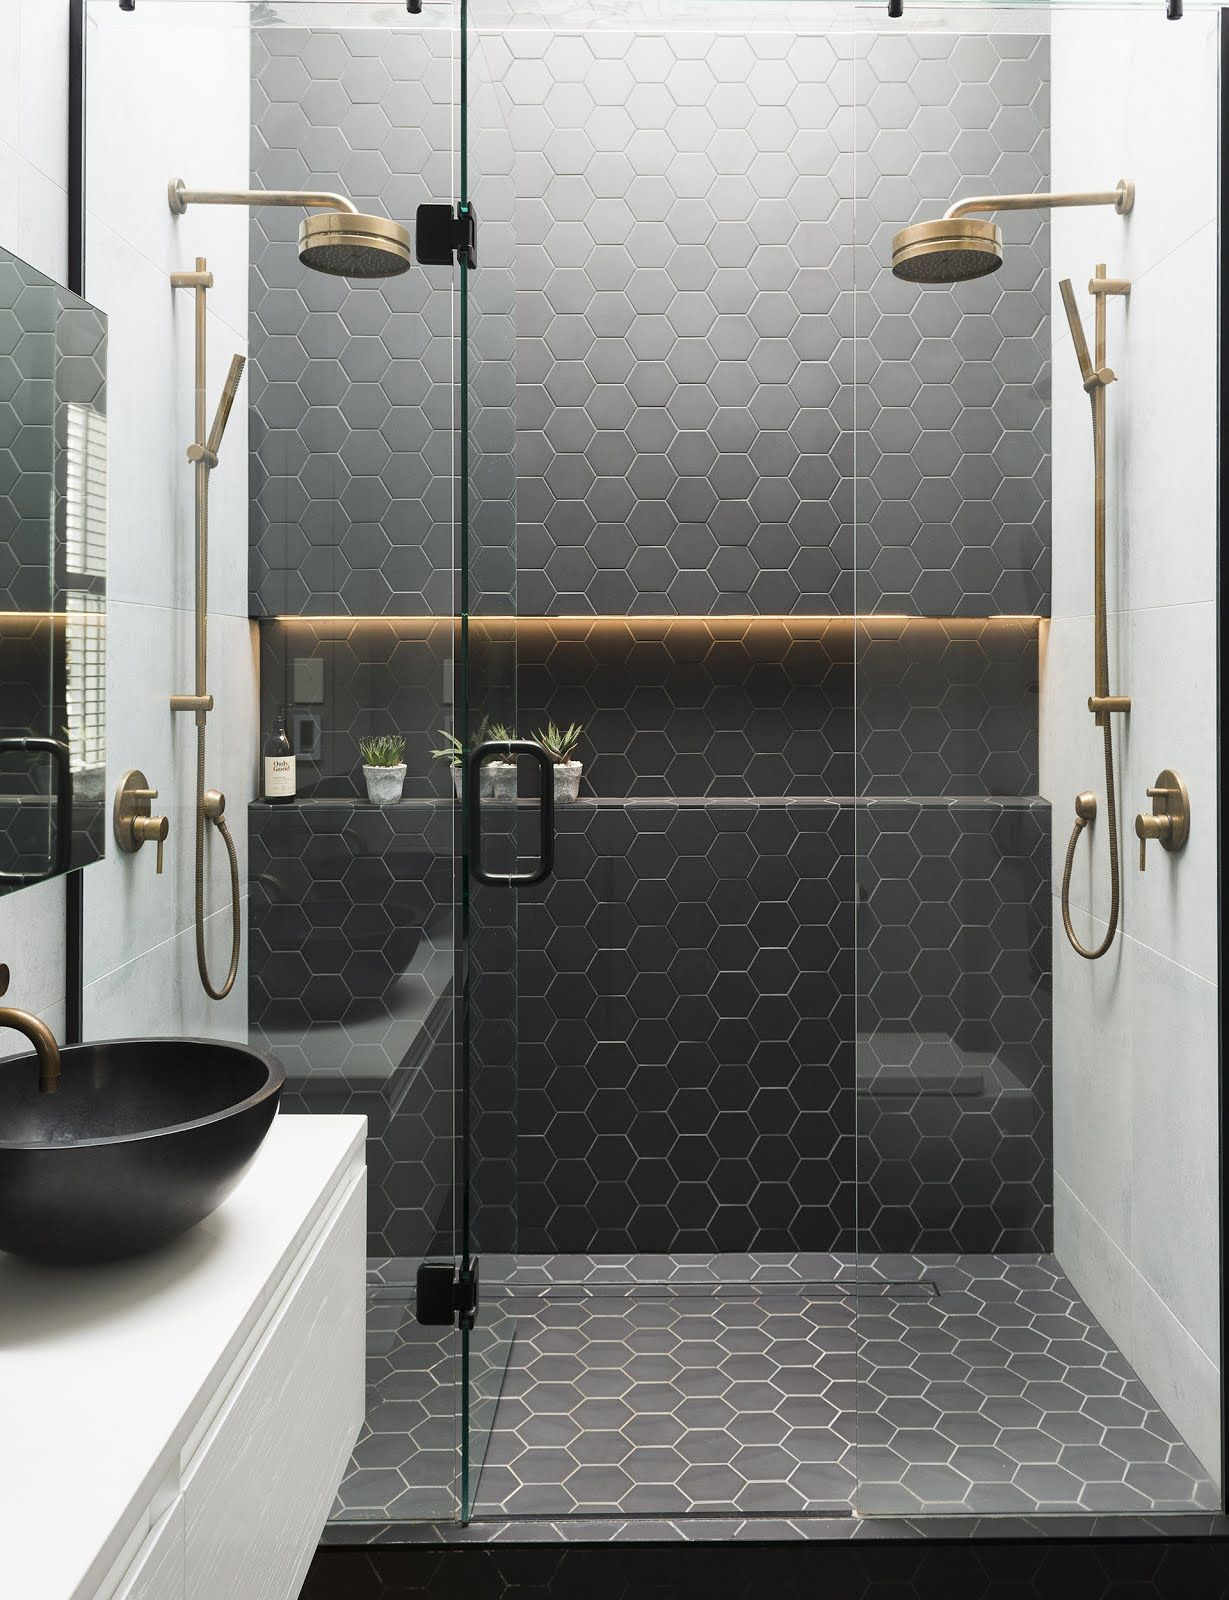 14 Things To Consider When Renovating Or Building Your Dream Bathroom! #dreambathrooms